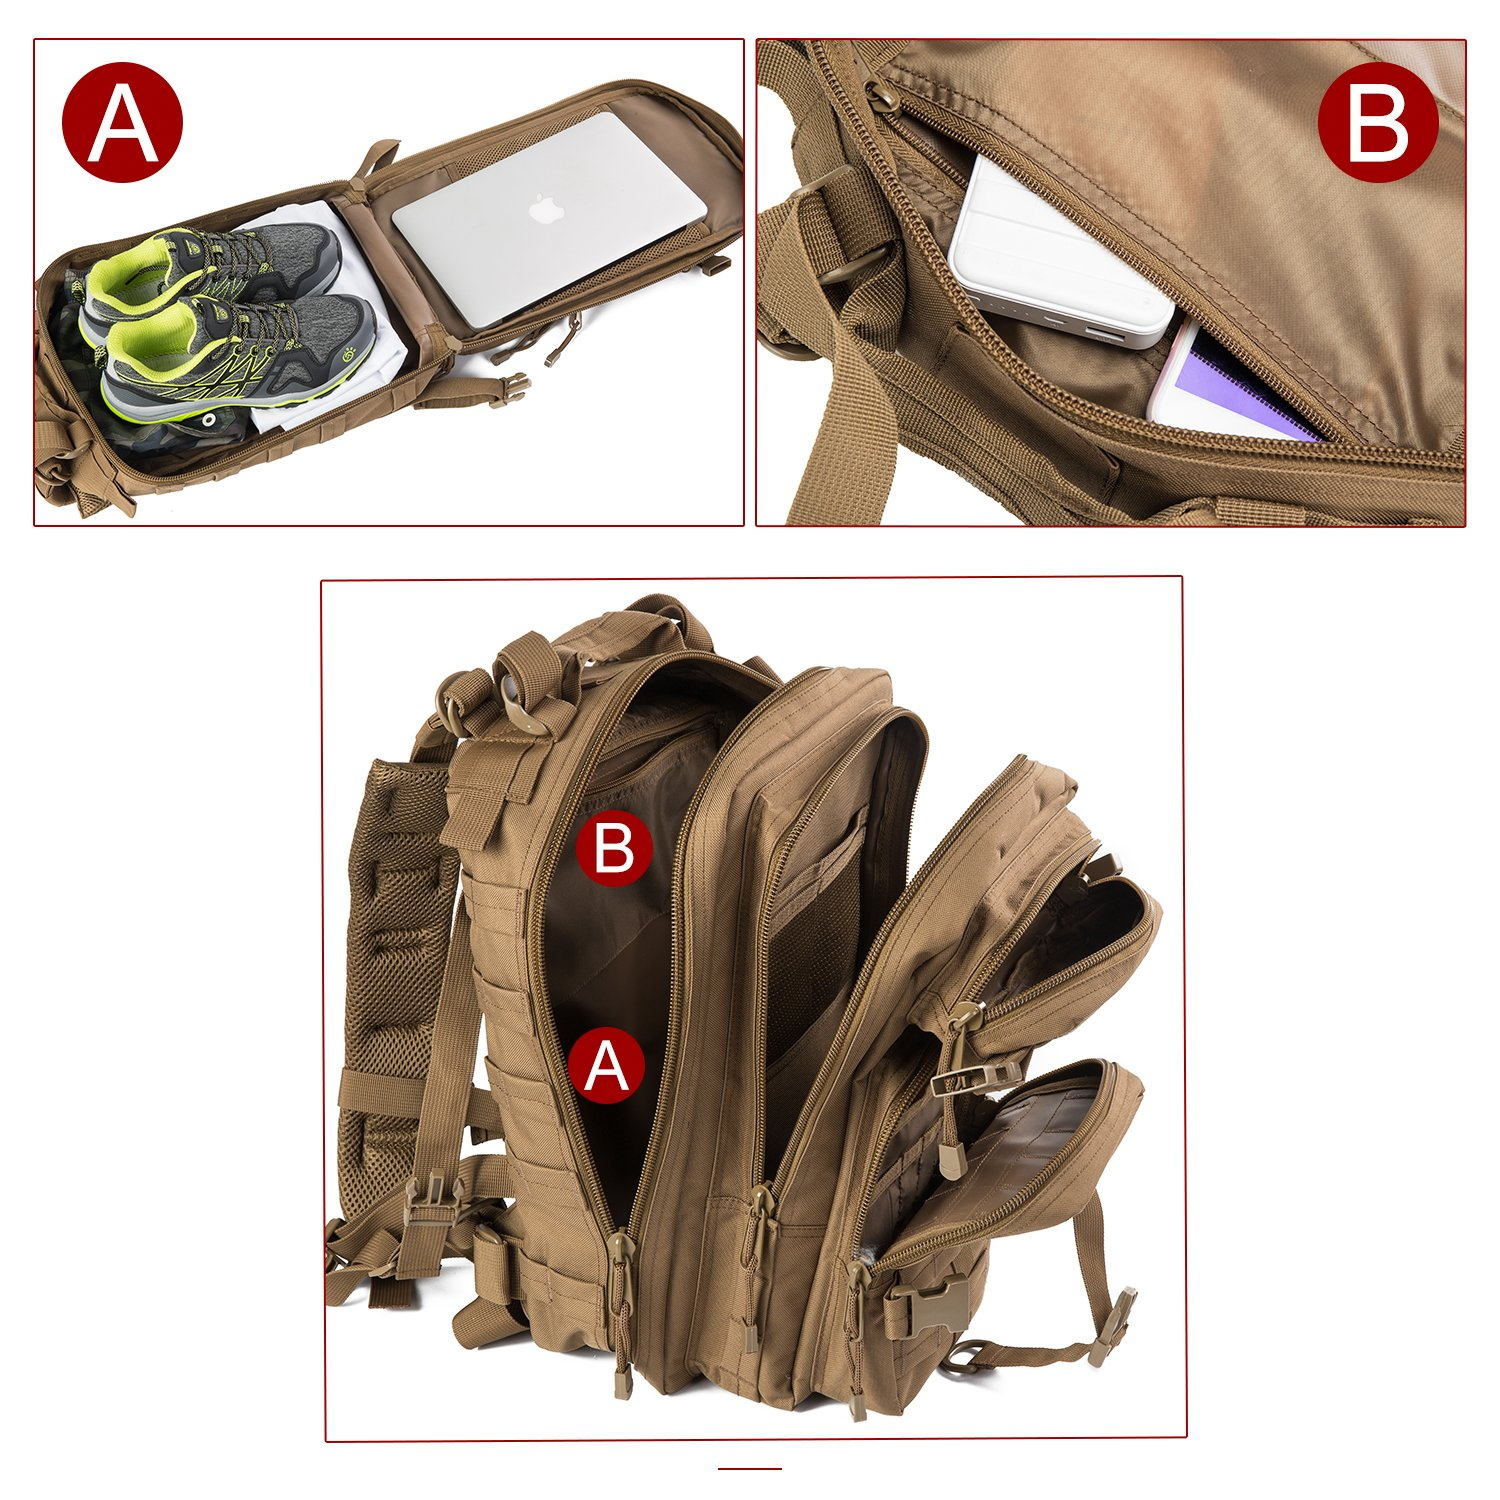 ARMYCAMOUSA Military Tactical Backpack Camping Trekking Small 3 Day Army Molle Assault Rucksack Pack for Outdoors Hiking Bug Out Bag /& Travel